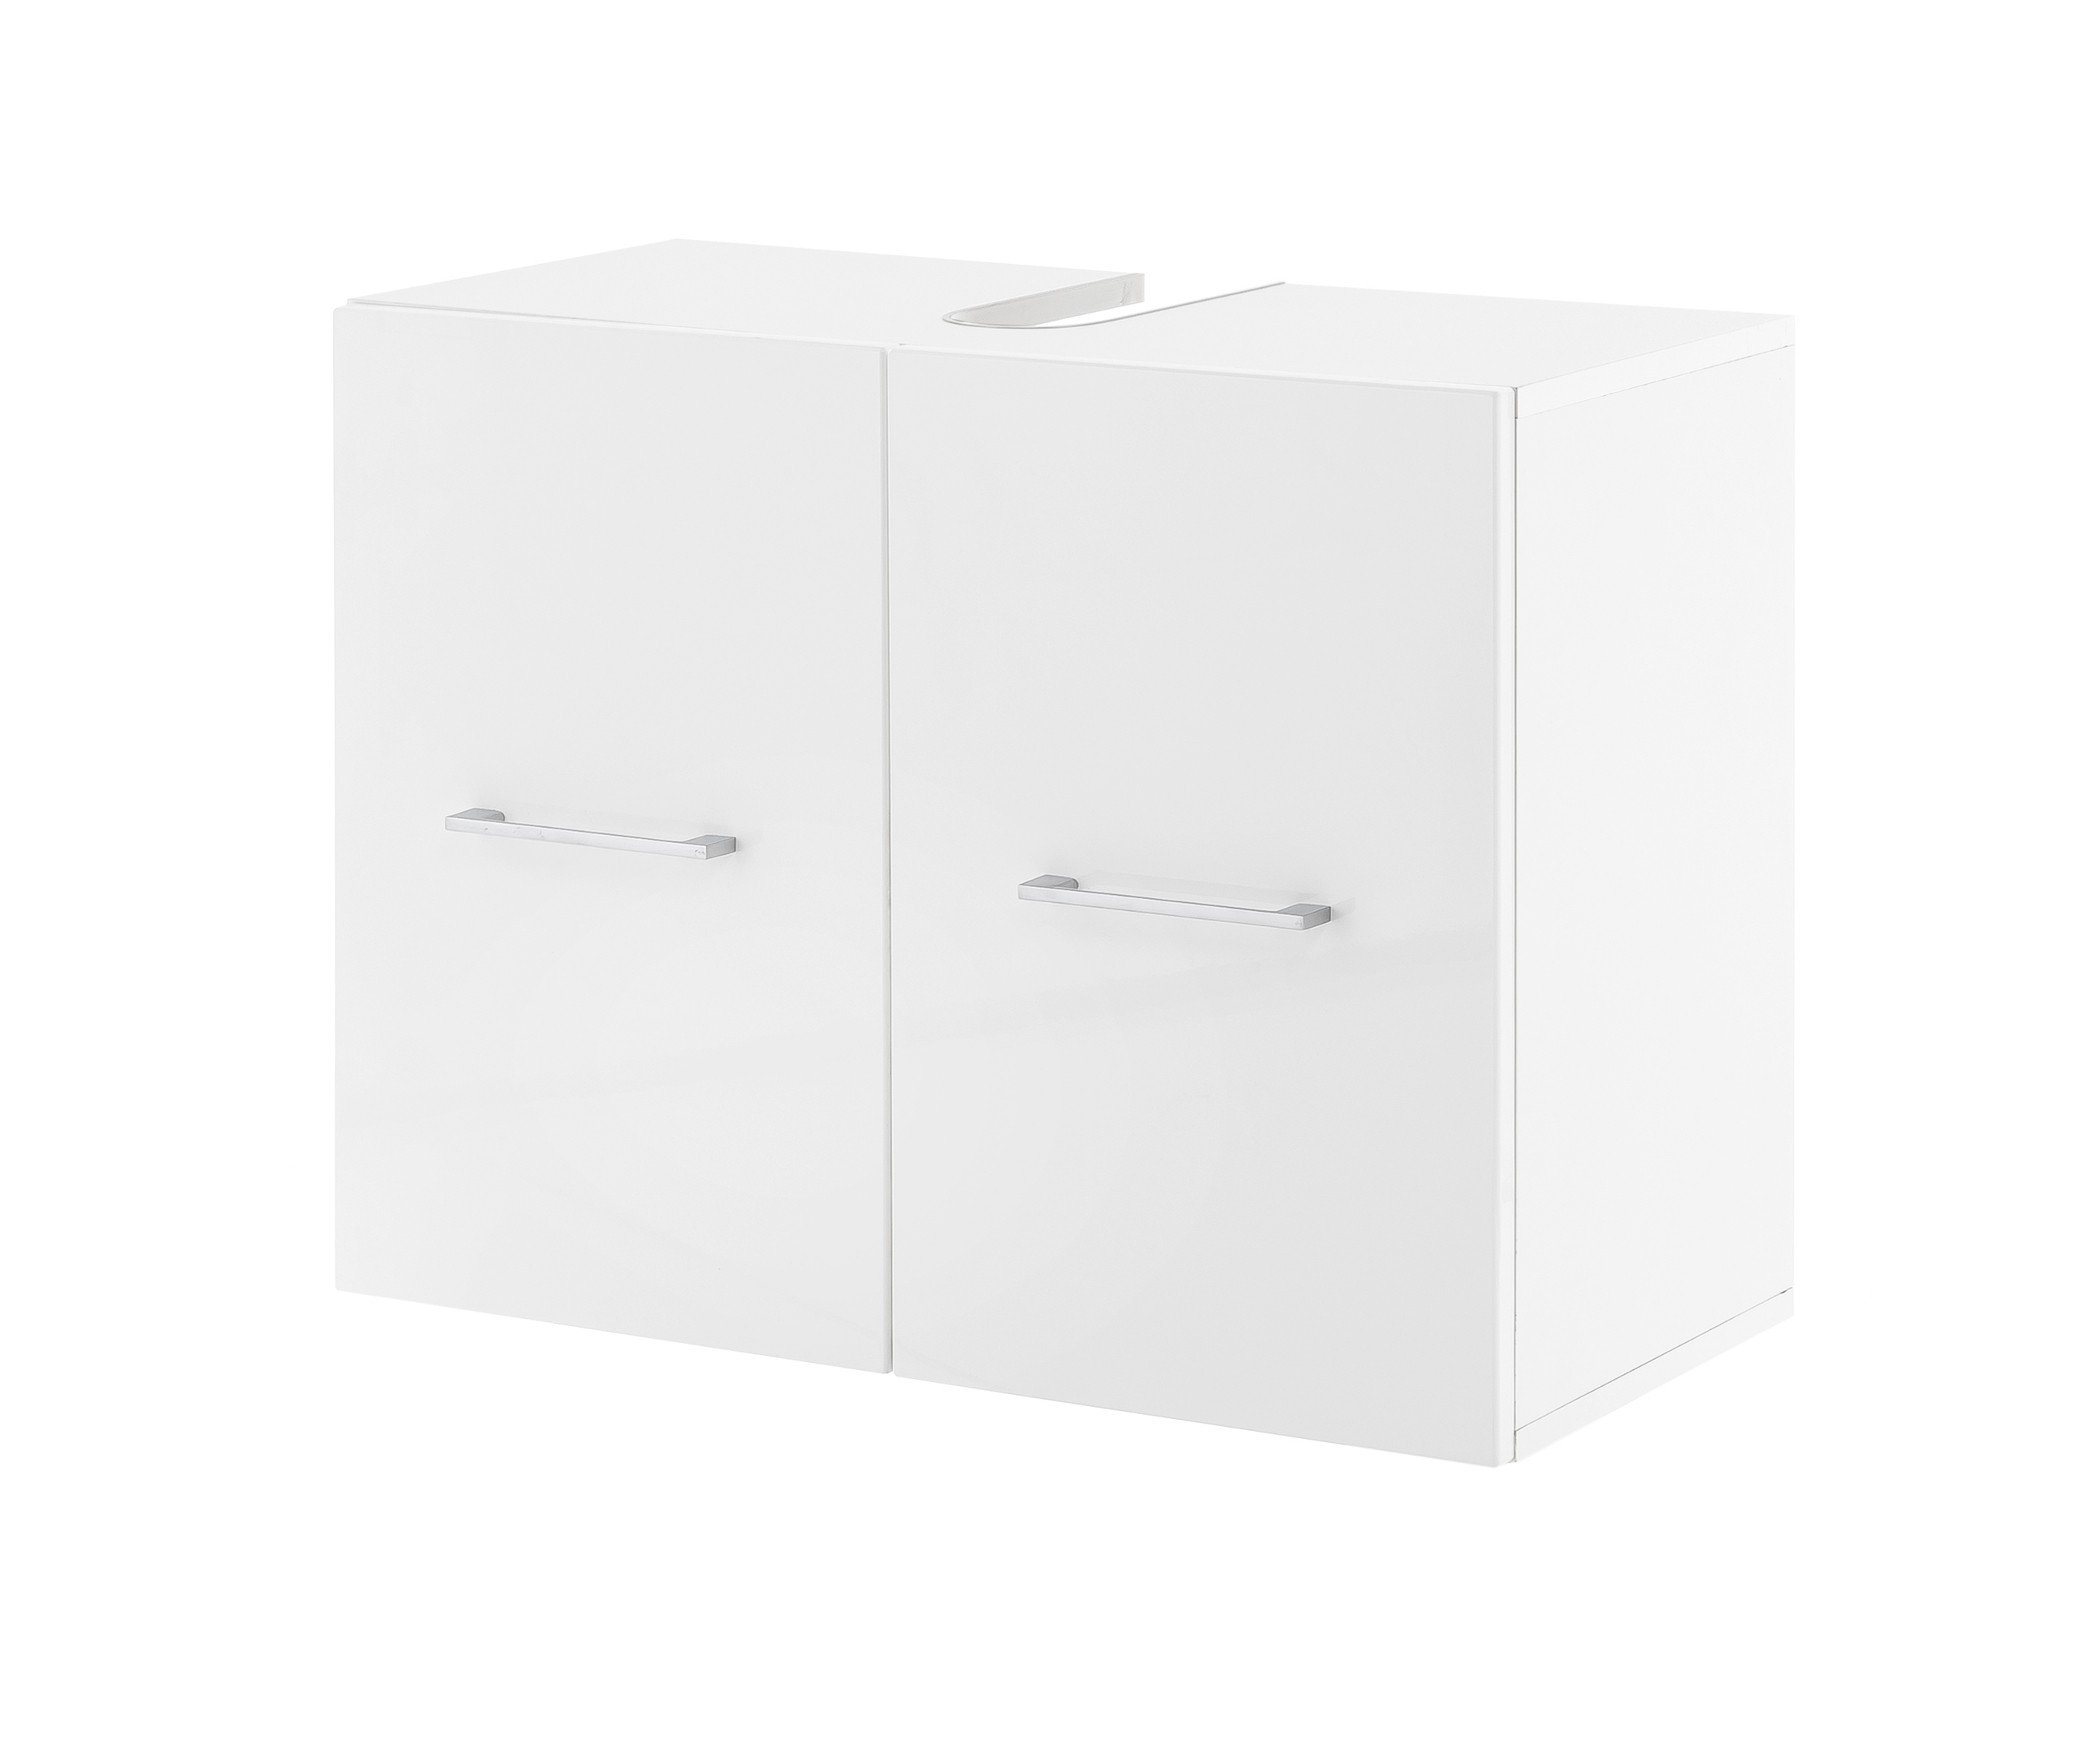 waschbeckenunterschrank ulm waschtisch unterschrank 2 t ren 65 cm breit weiss ebay. Black Bedroom Furniture Sets. Home Design Ideas